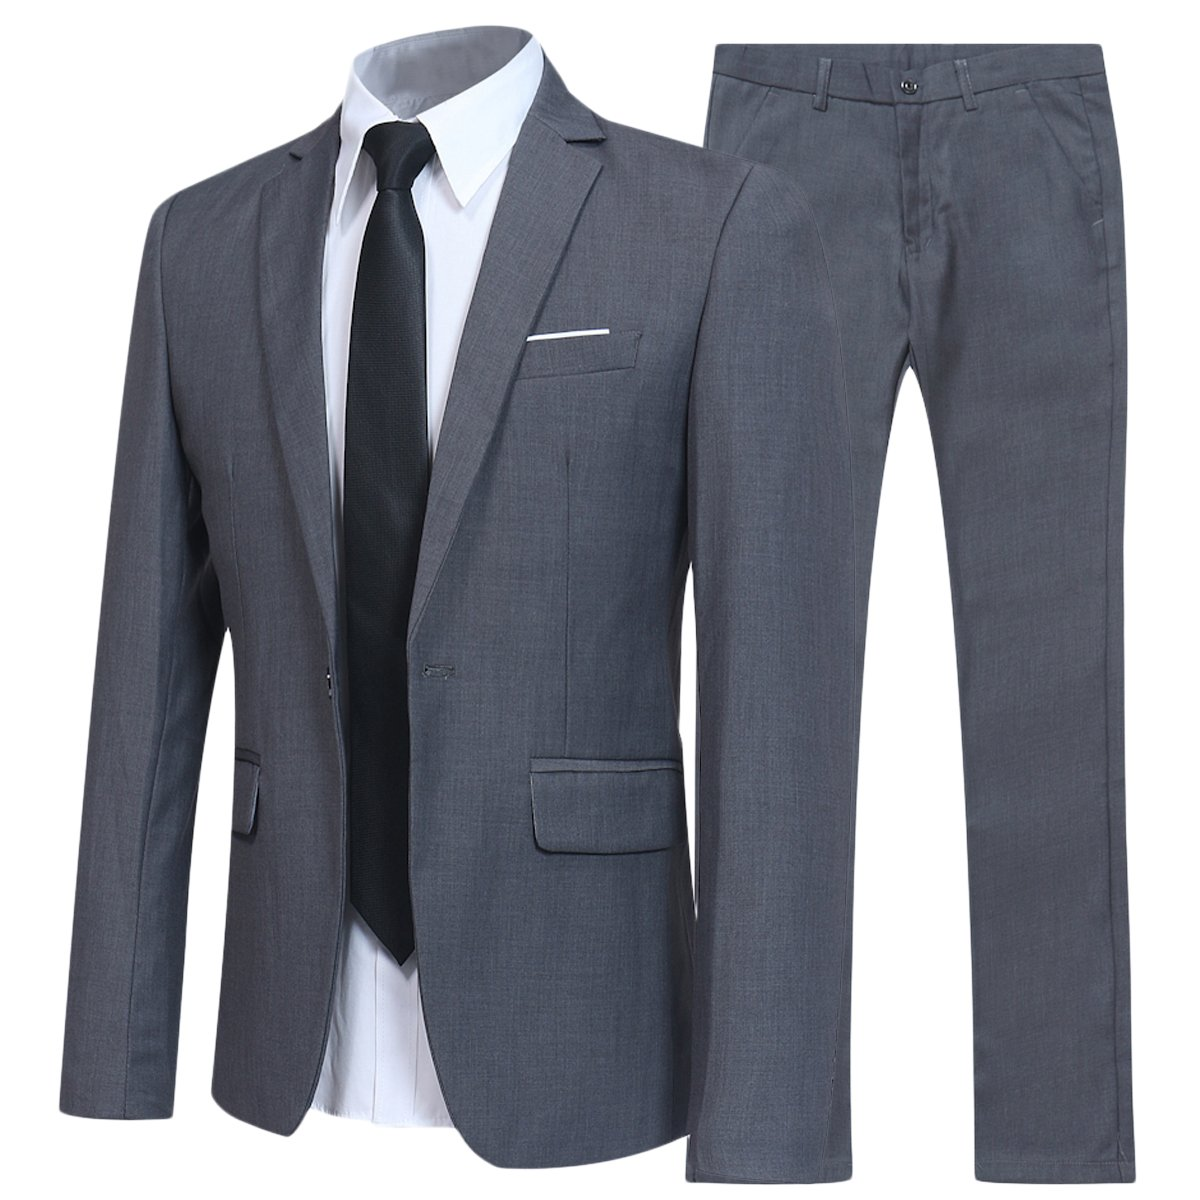 Slim Fit 2 Piece Suit For Men One Button Casual/Formal/Wedding Tuxedo,Grey,Medium